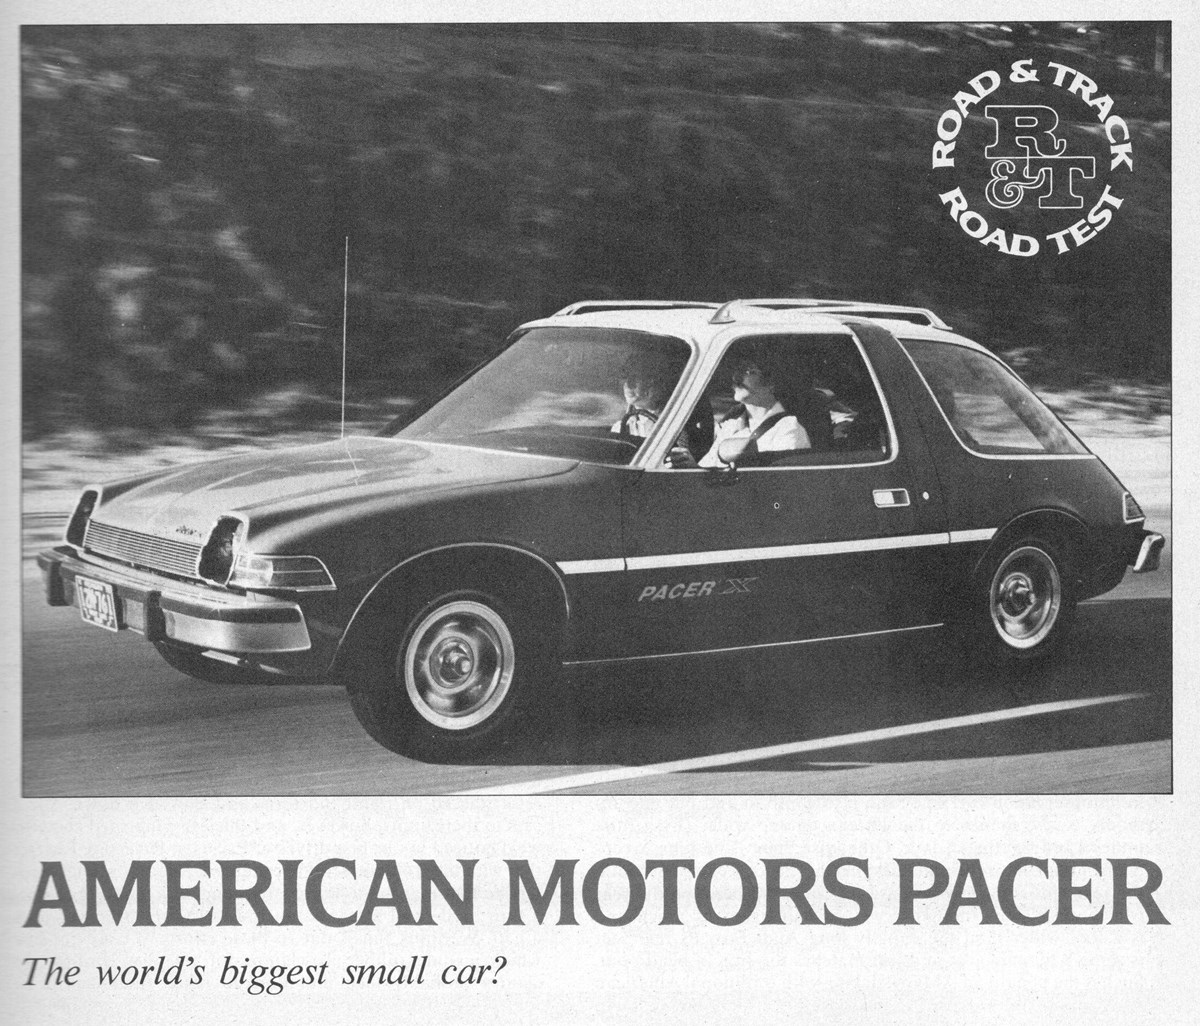 1975 Amc Pacer Love Amc Cars I Would Drive A Pacer Now